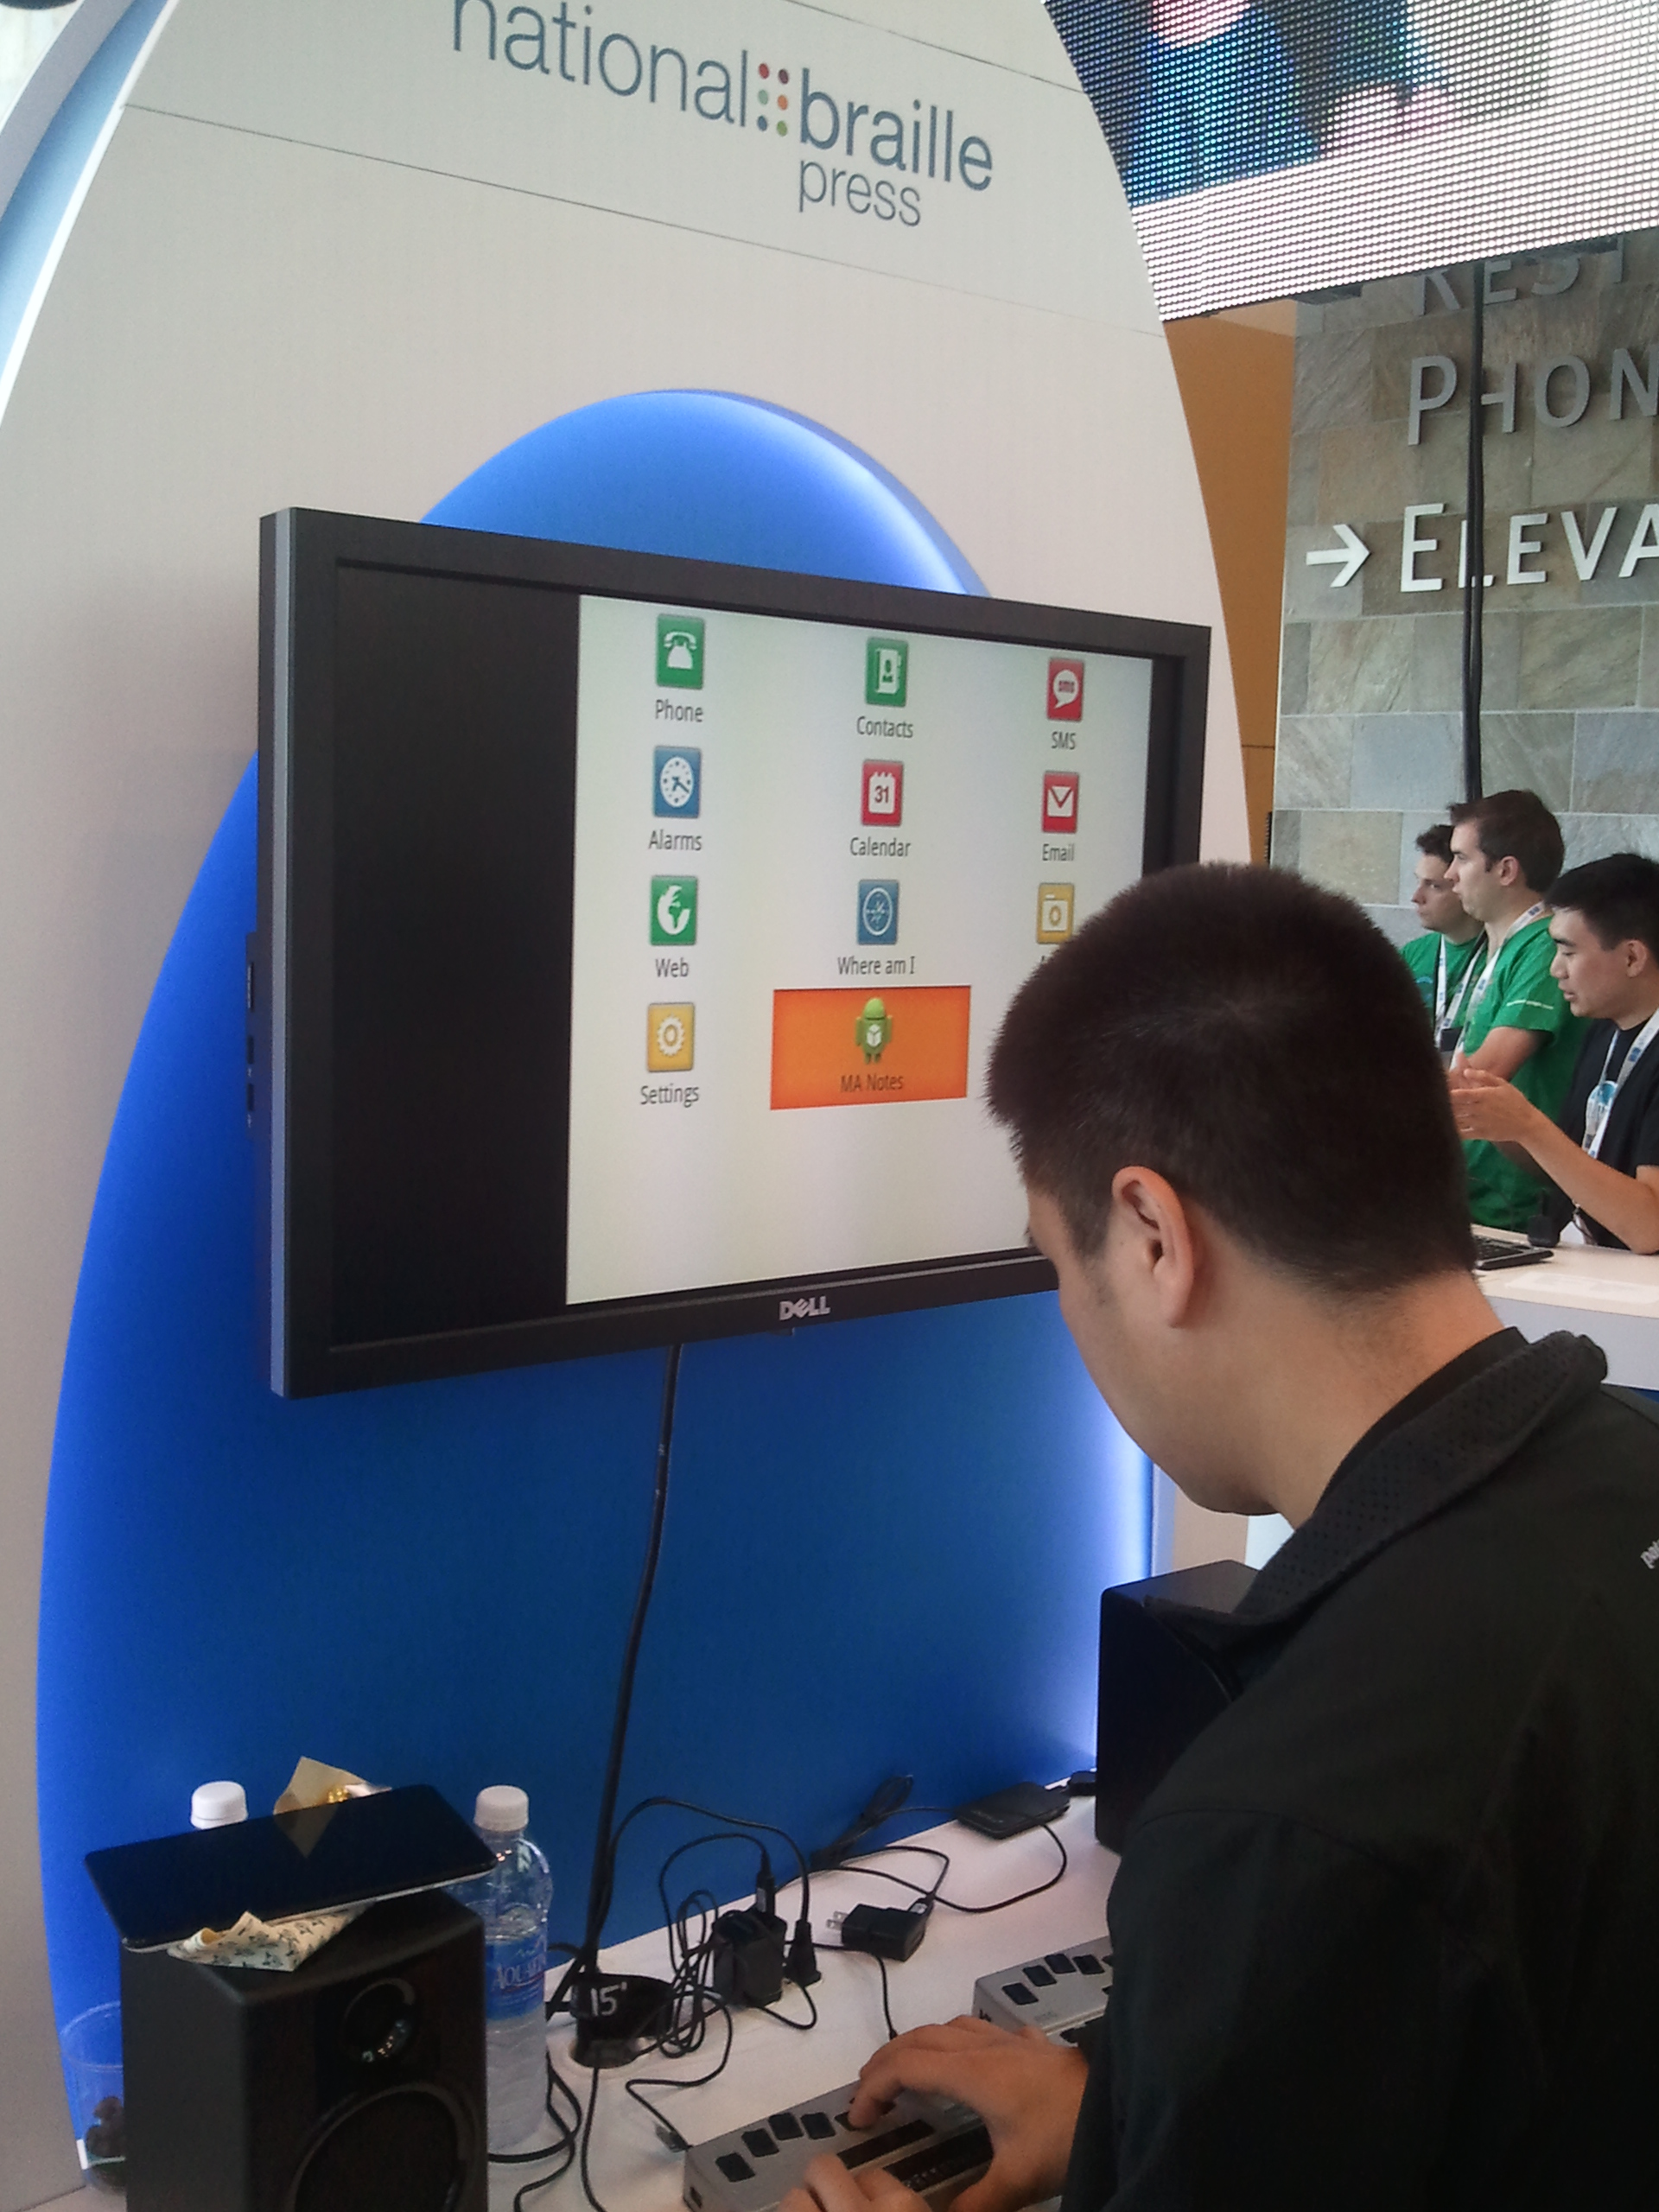 A photo of a blind person field testing the b2g that is connected to a large output screen from NBP's booth at the Google I/O conference